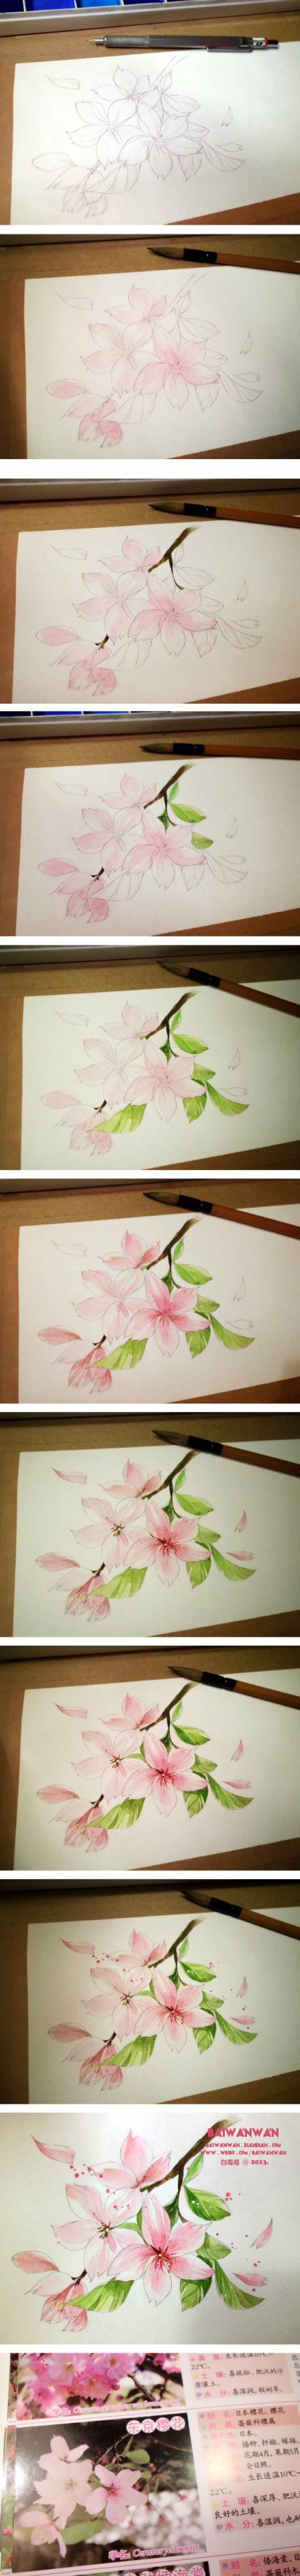 154 best images about step by step watercolor on for Watercolor tutorials step by step